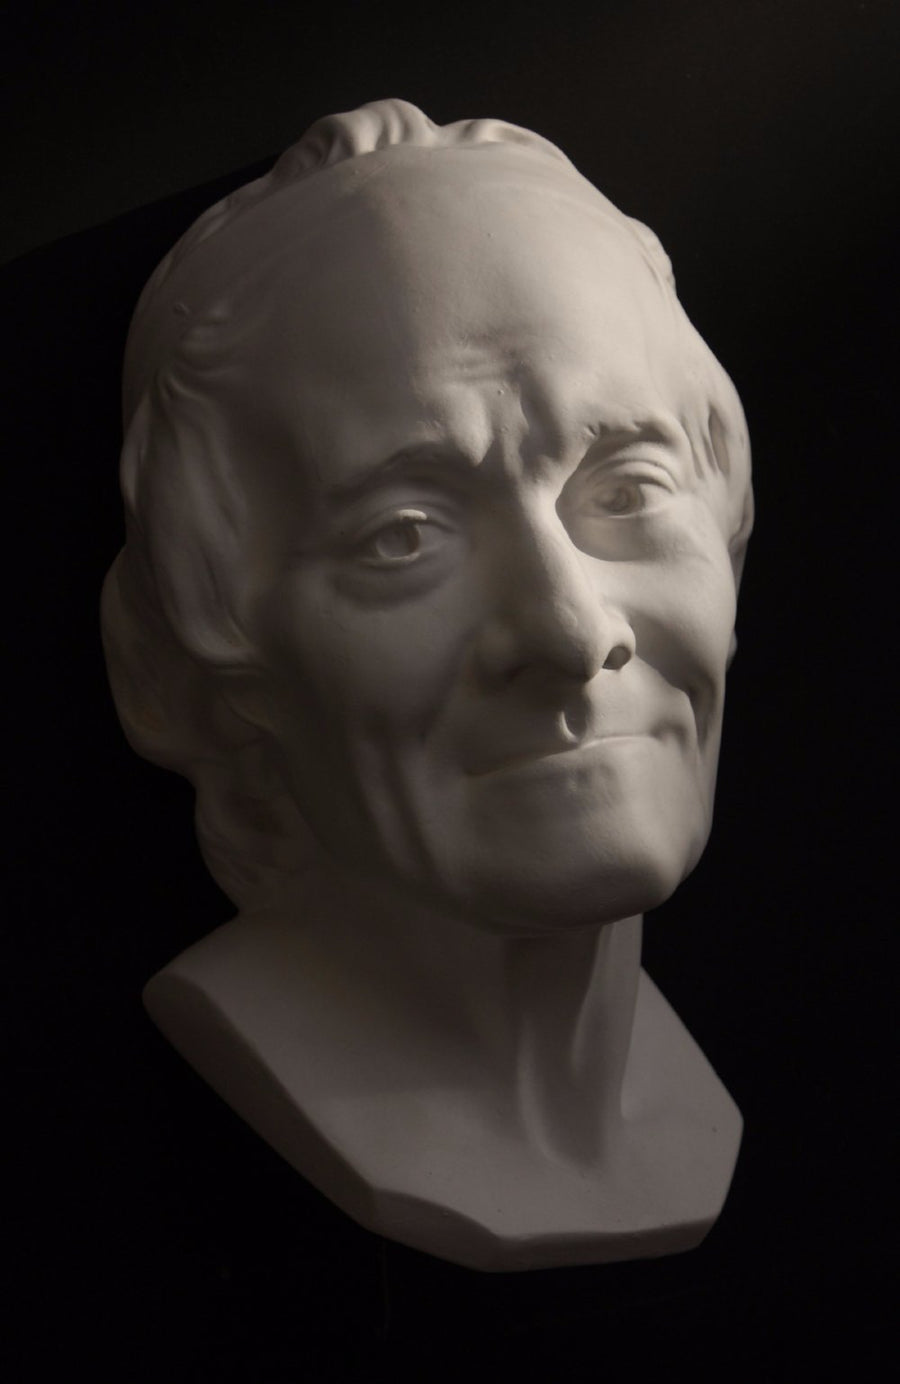 Photo with black background of plaster cast sculpture of elderly male head, namely Voltaire